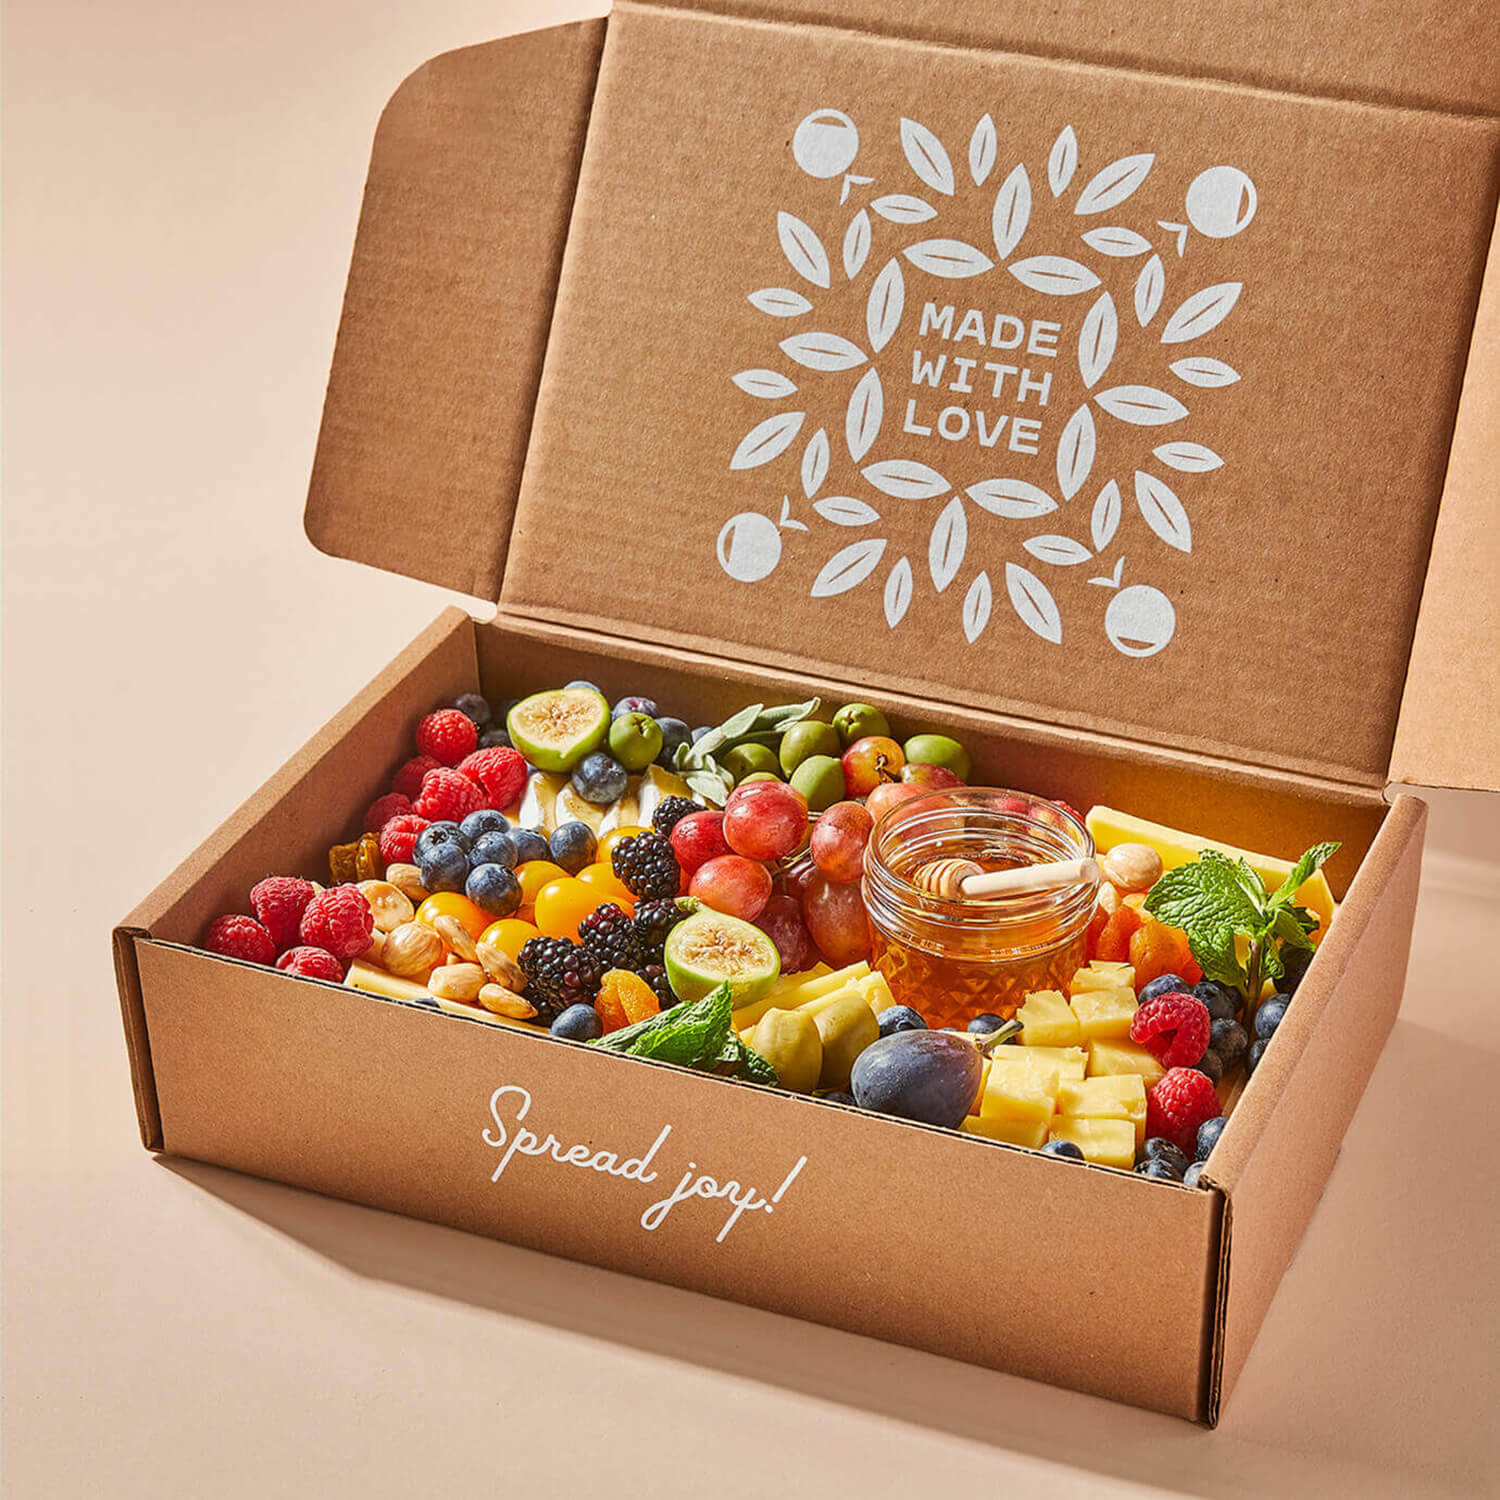 Angled view of an open medium Grazy box containing cheeses and fruits